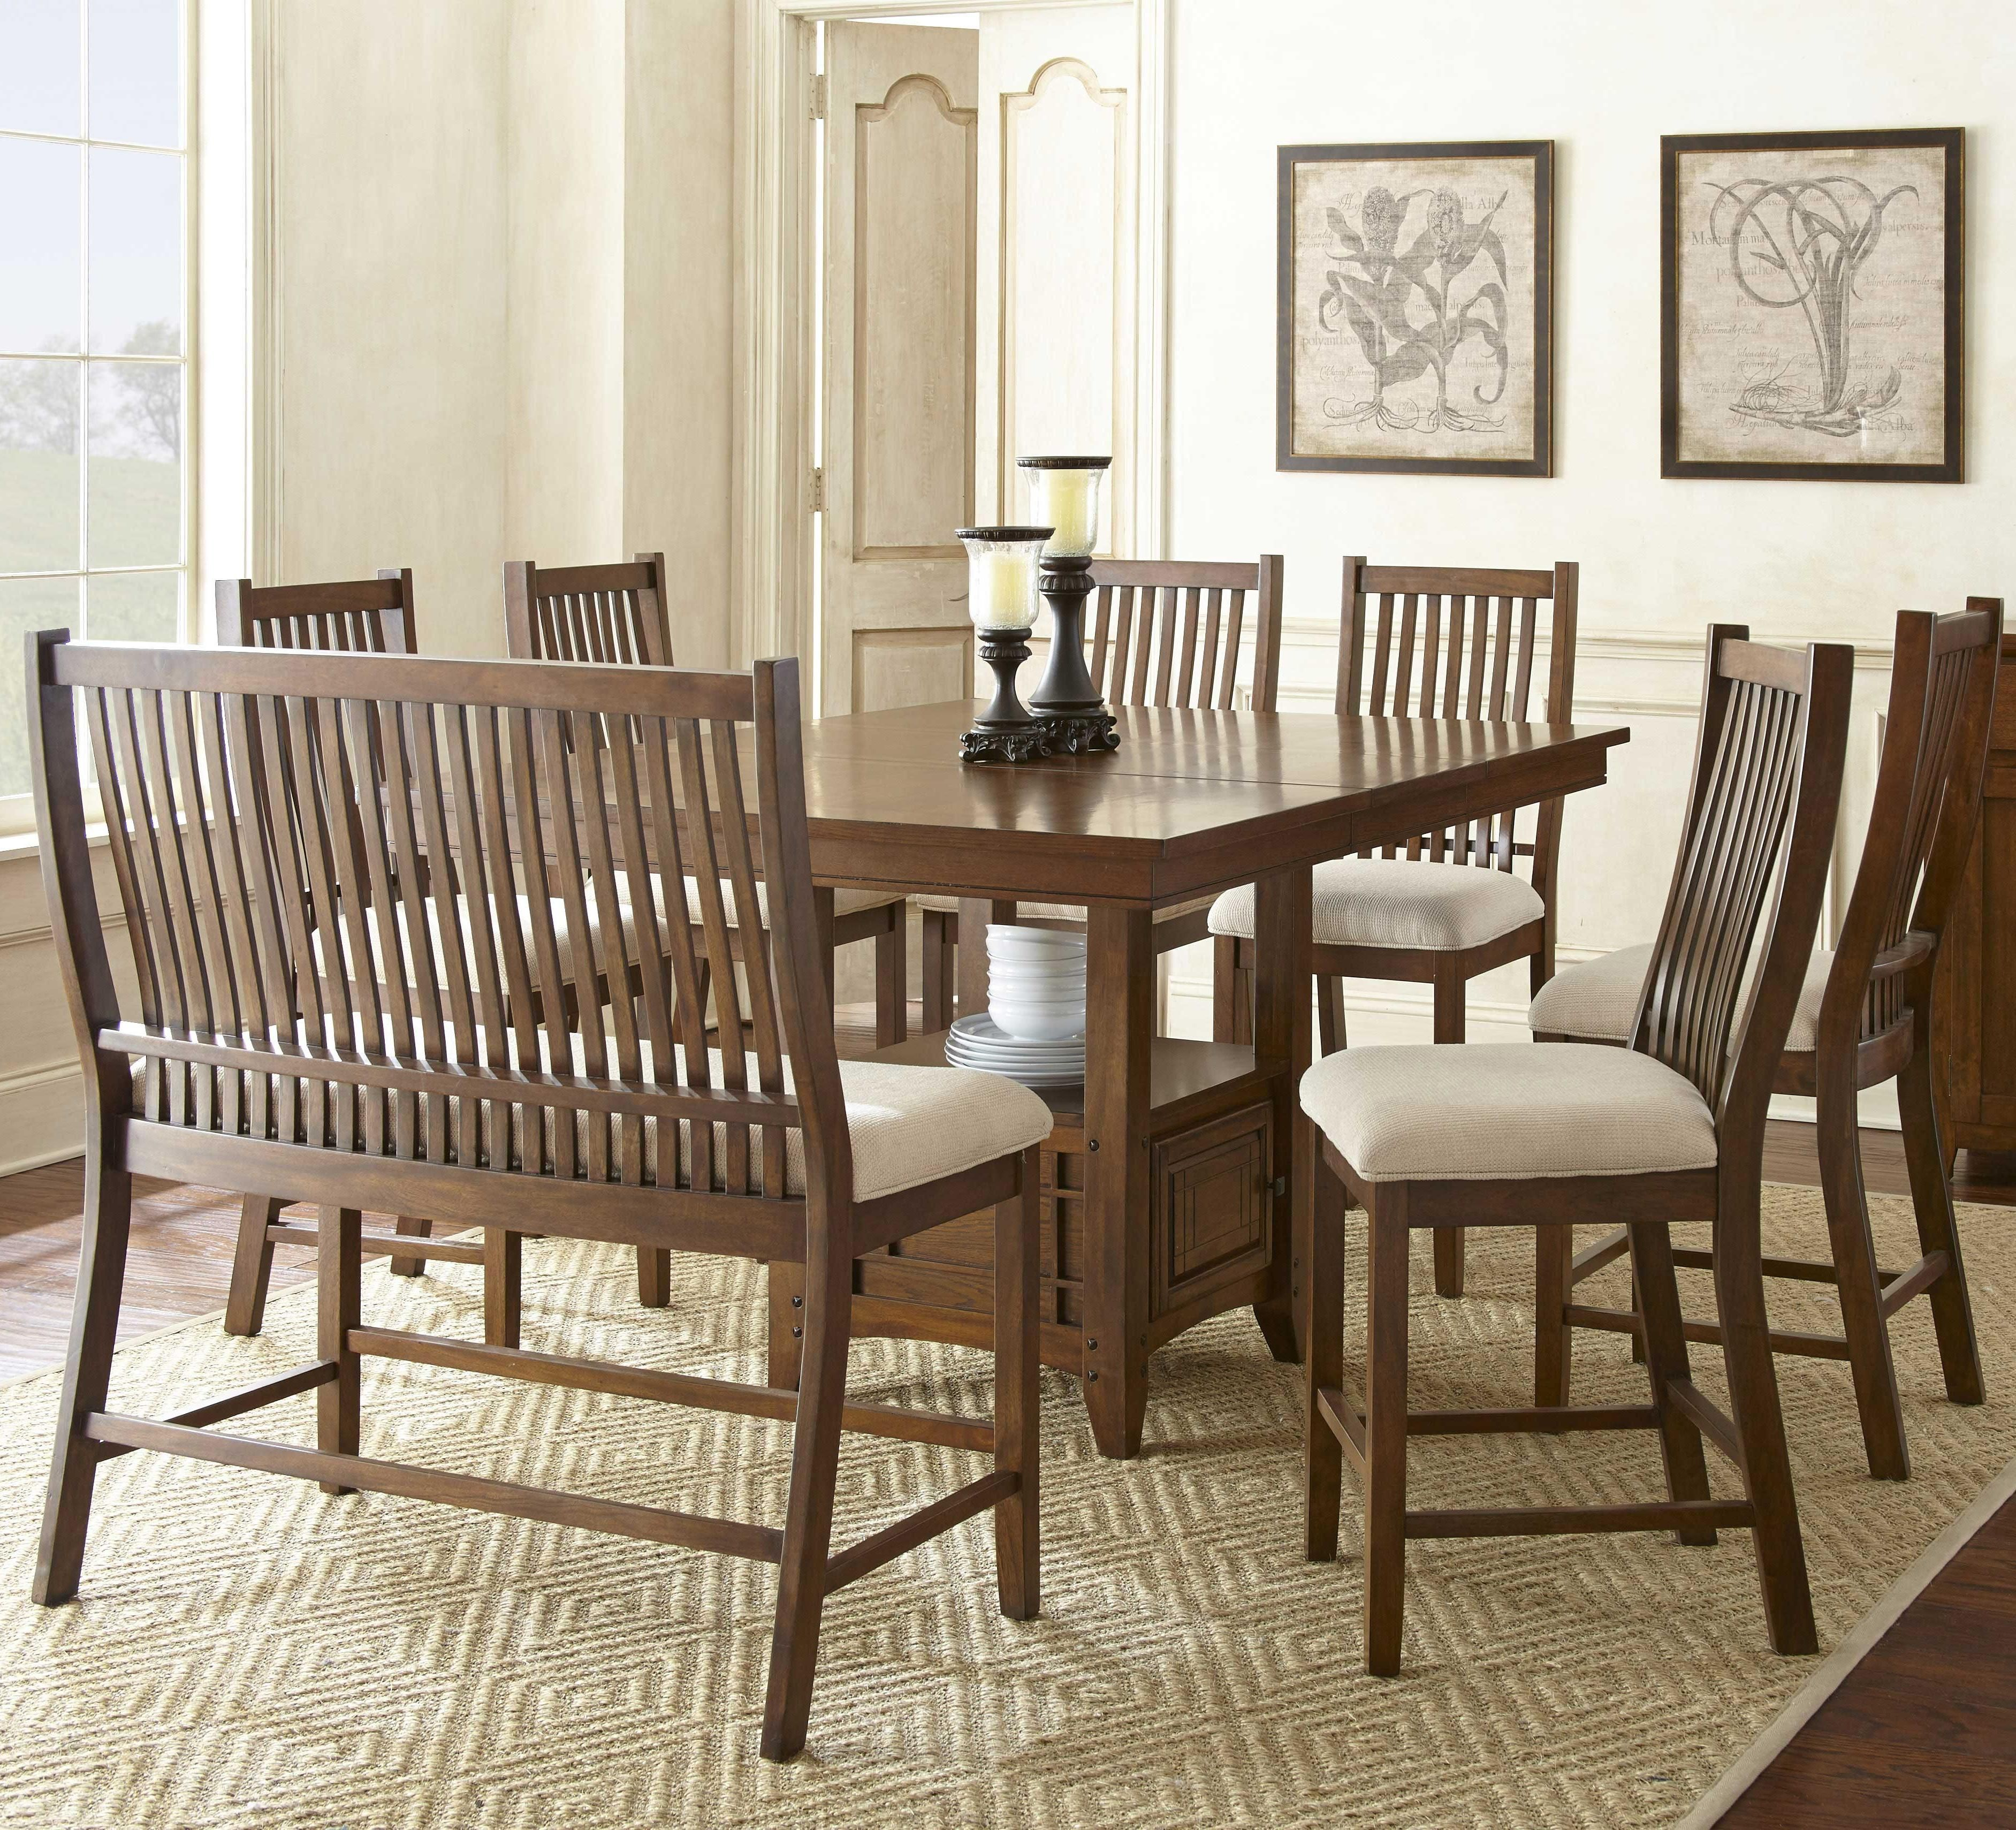 Inspired By Arts And Crafts Style This Counter Height Dining Set